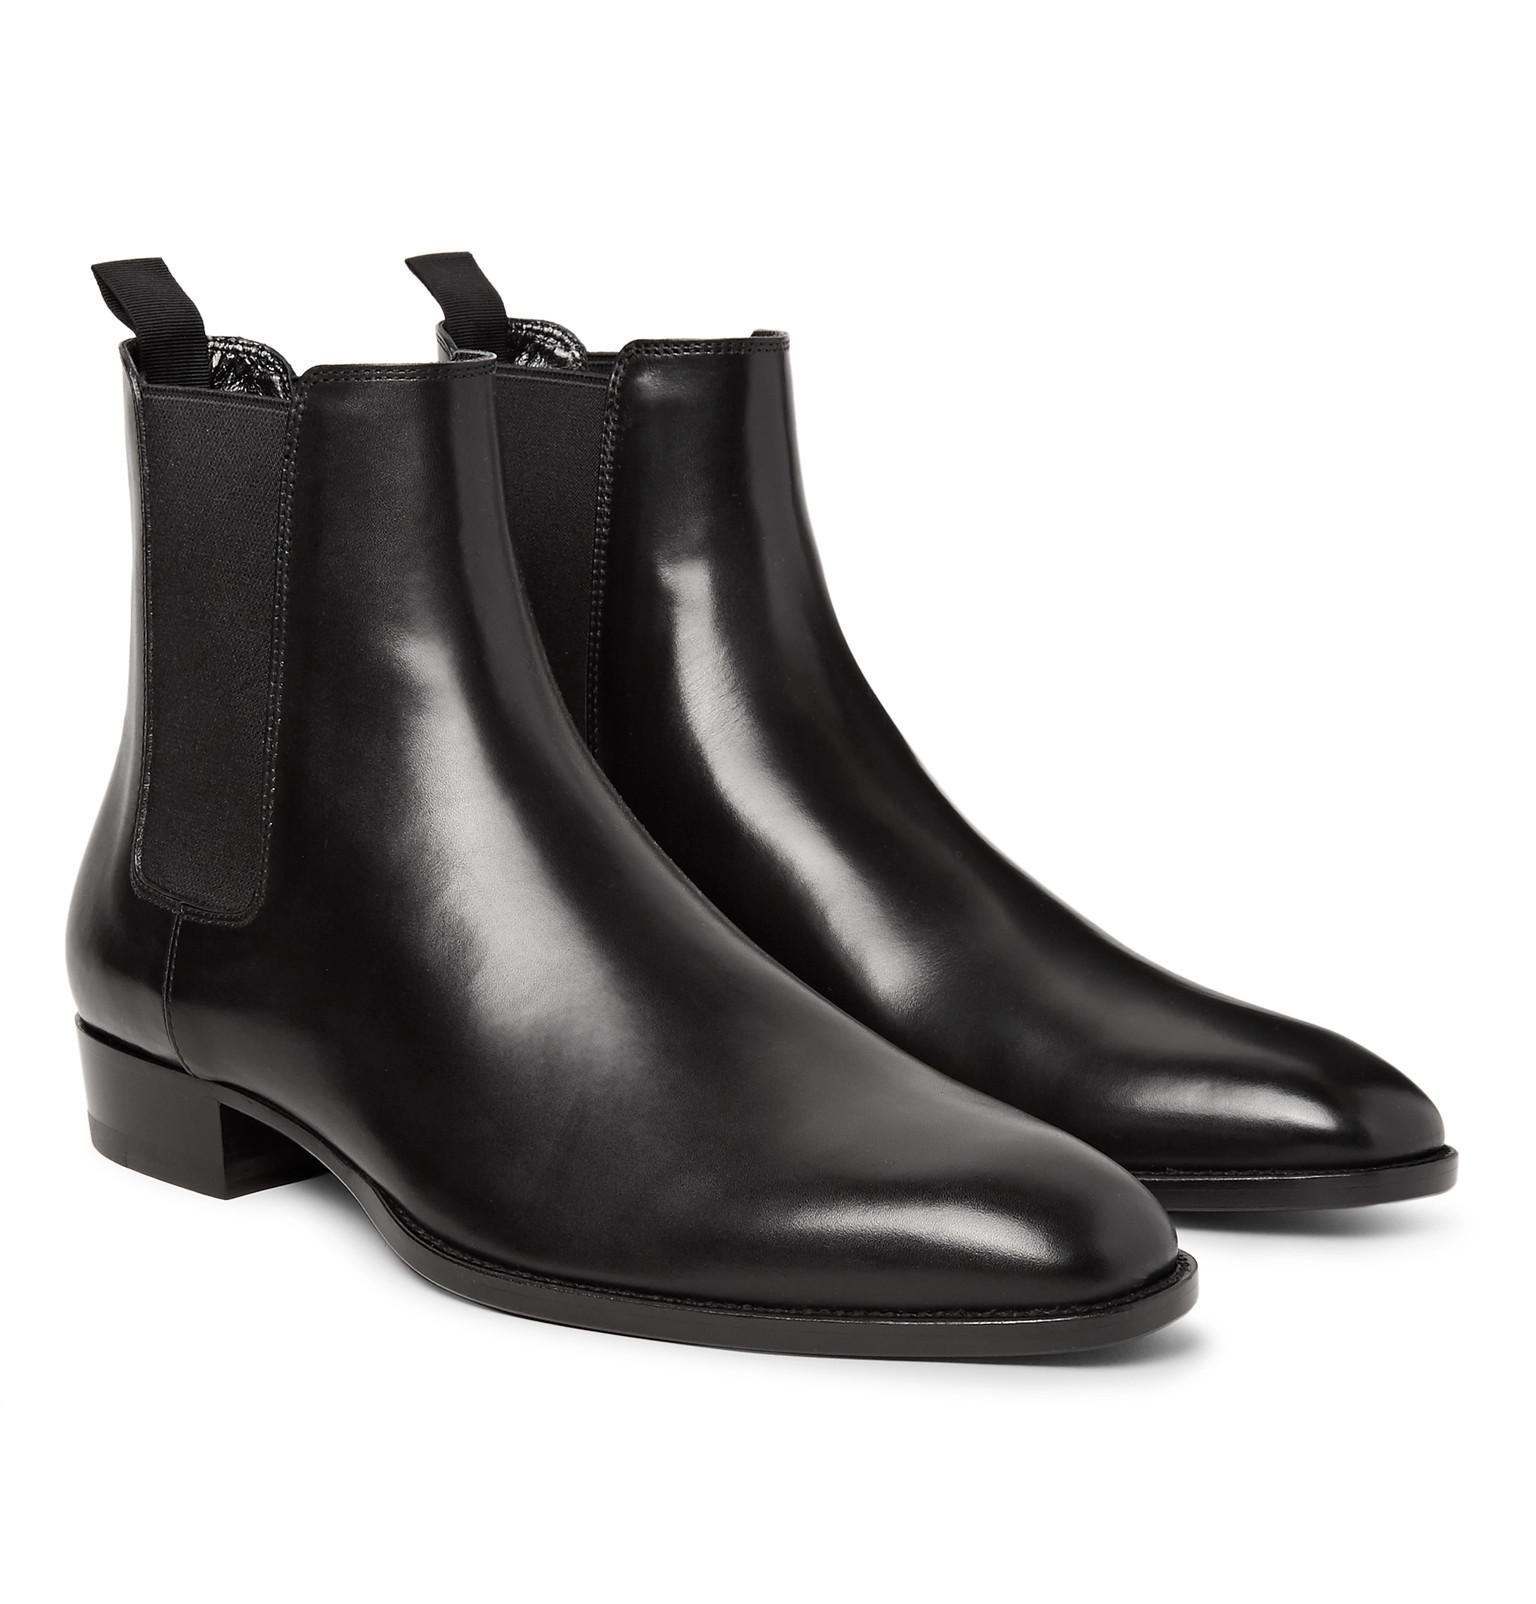 5c5f38b20900 Lyst - Saint Laurent Polished-leather Chelsea Boots in Black for Men ...